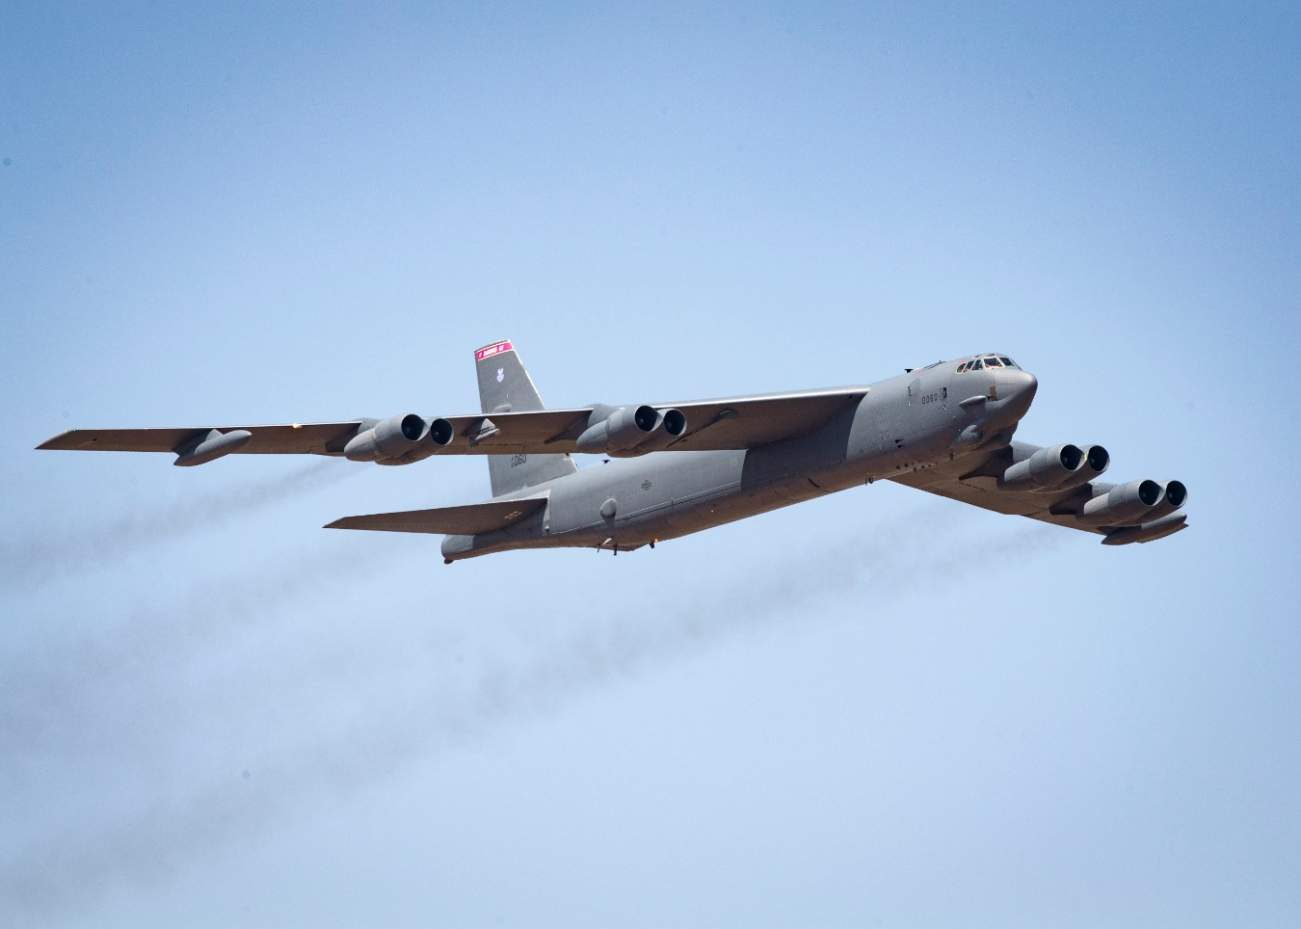 Giving B-52 Bombers To Israel Would Be More Trouble Than Its Worth